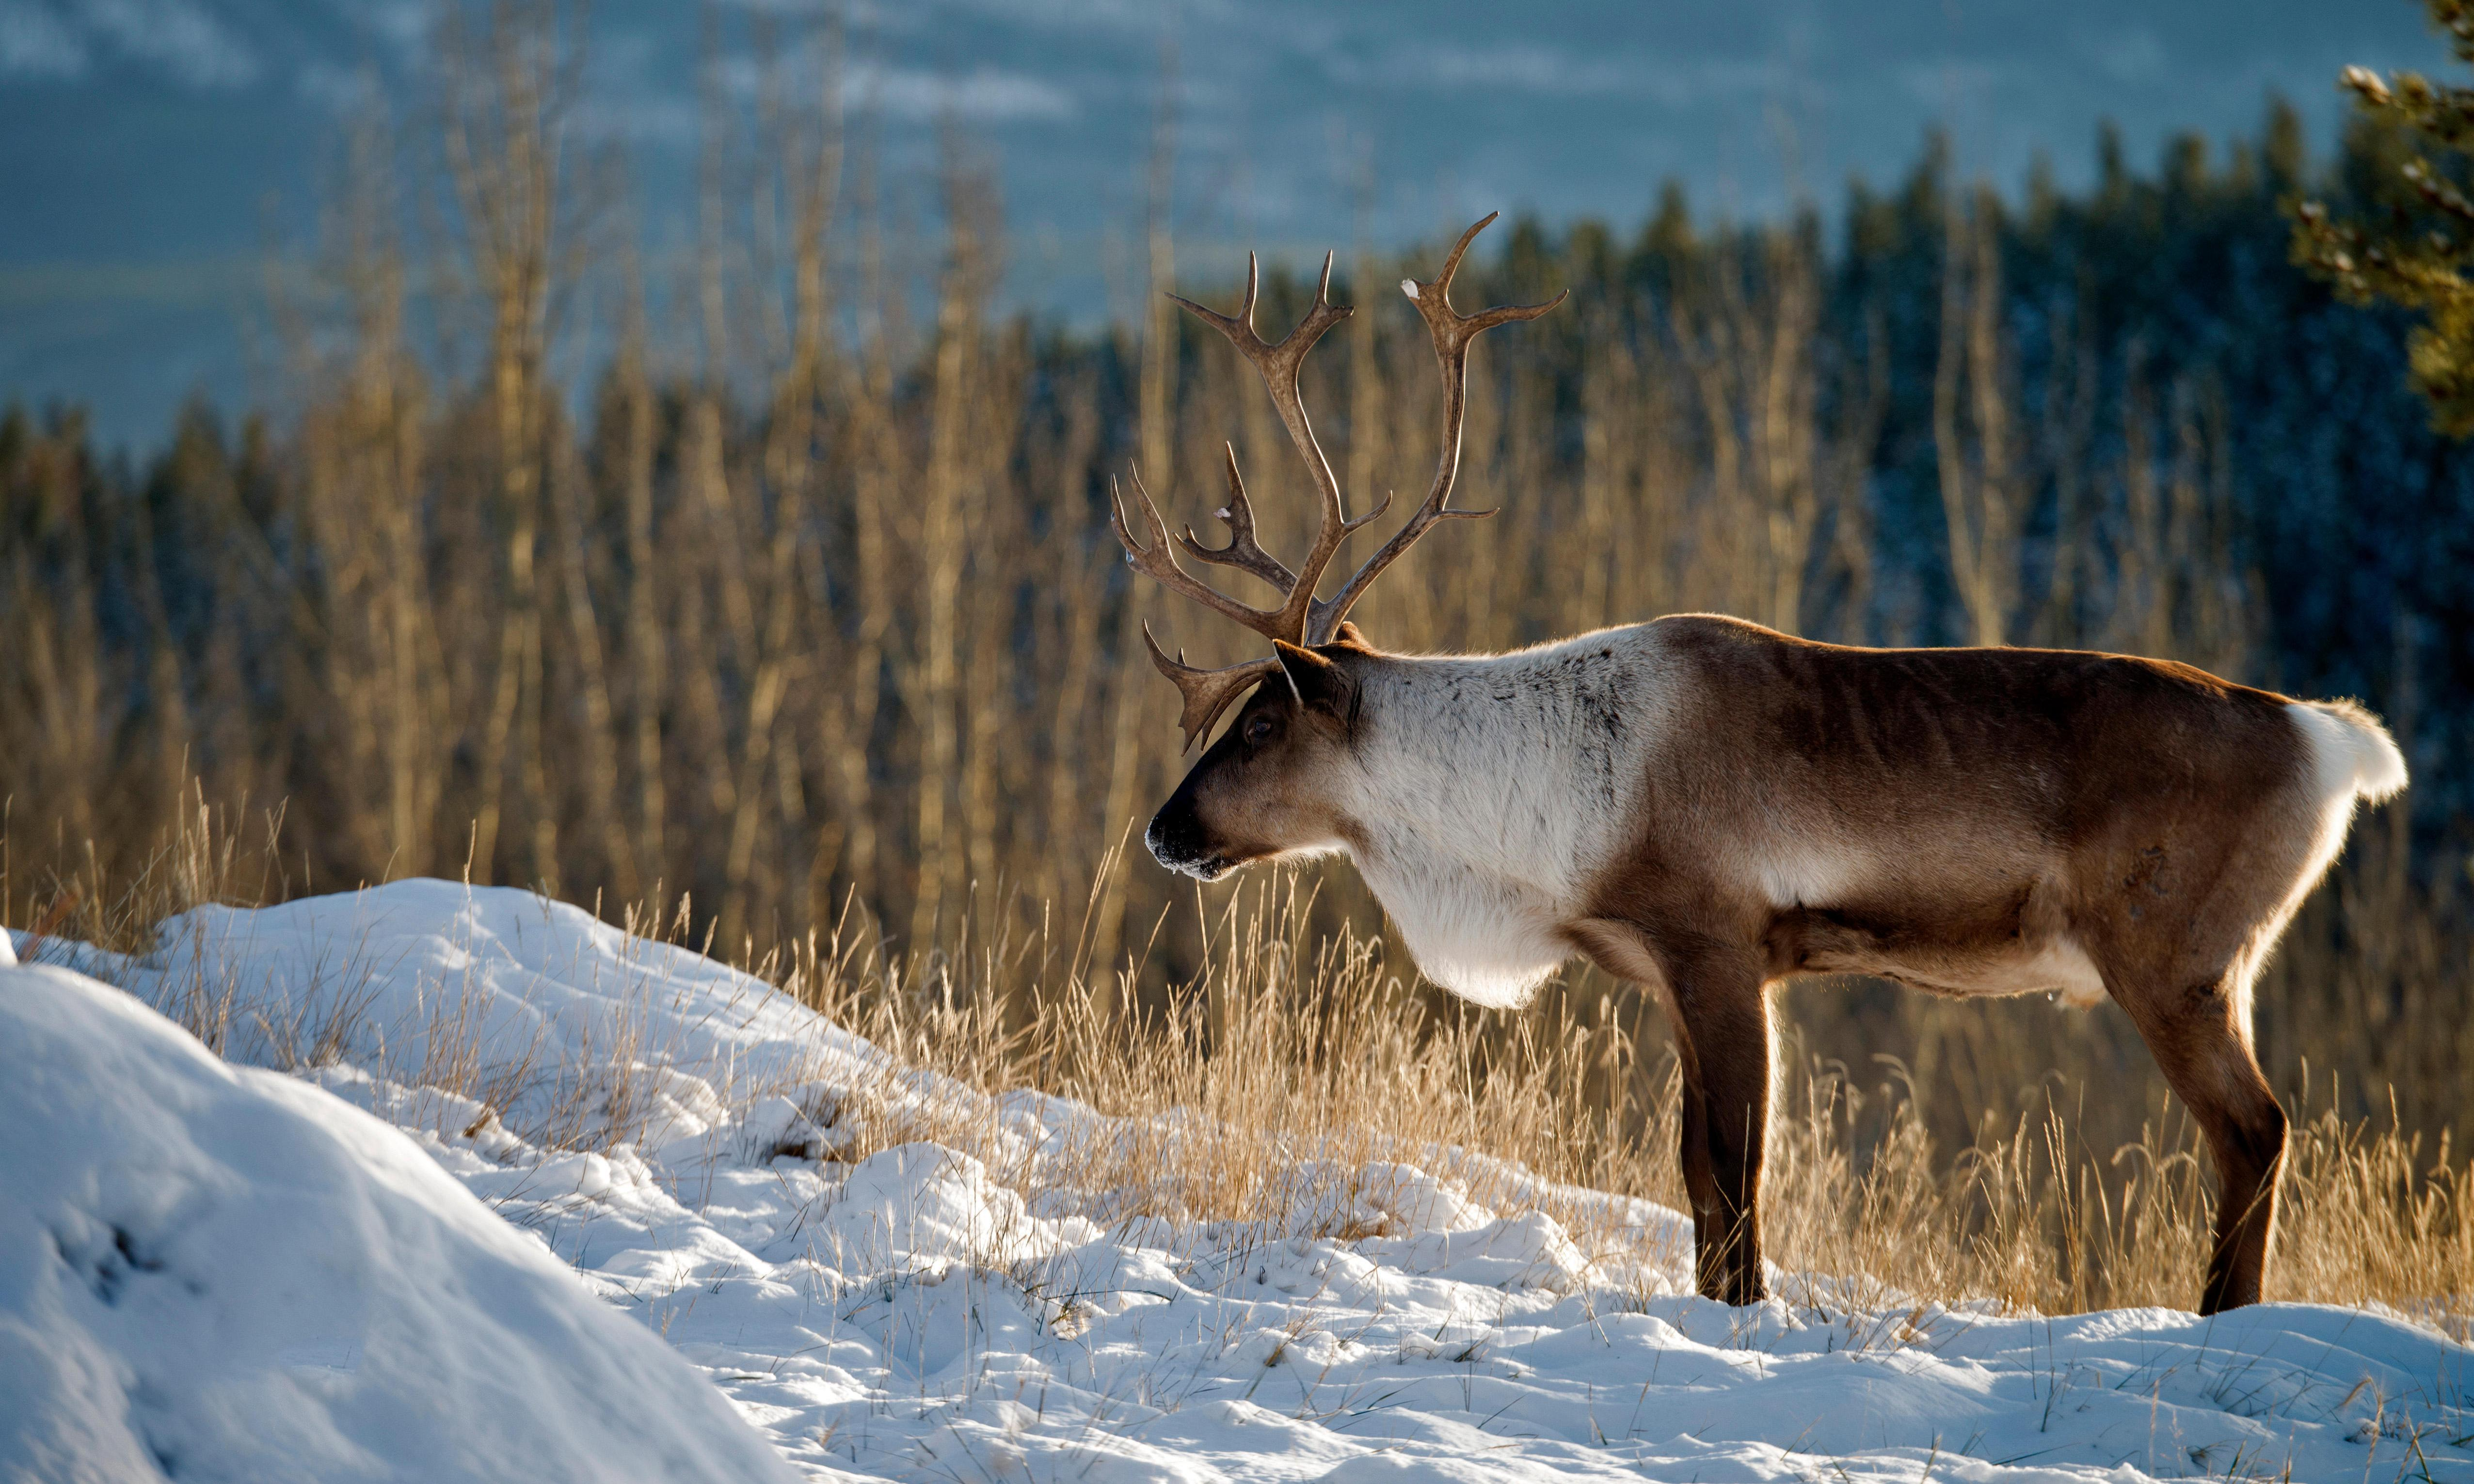 Last caribou in lower 48 US states all but extinct: 'The herd is functionally lost'